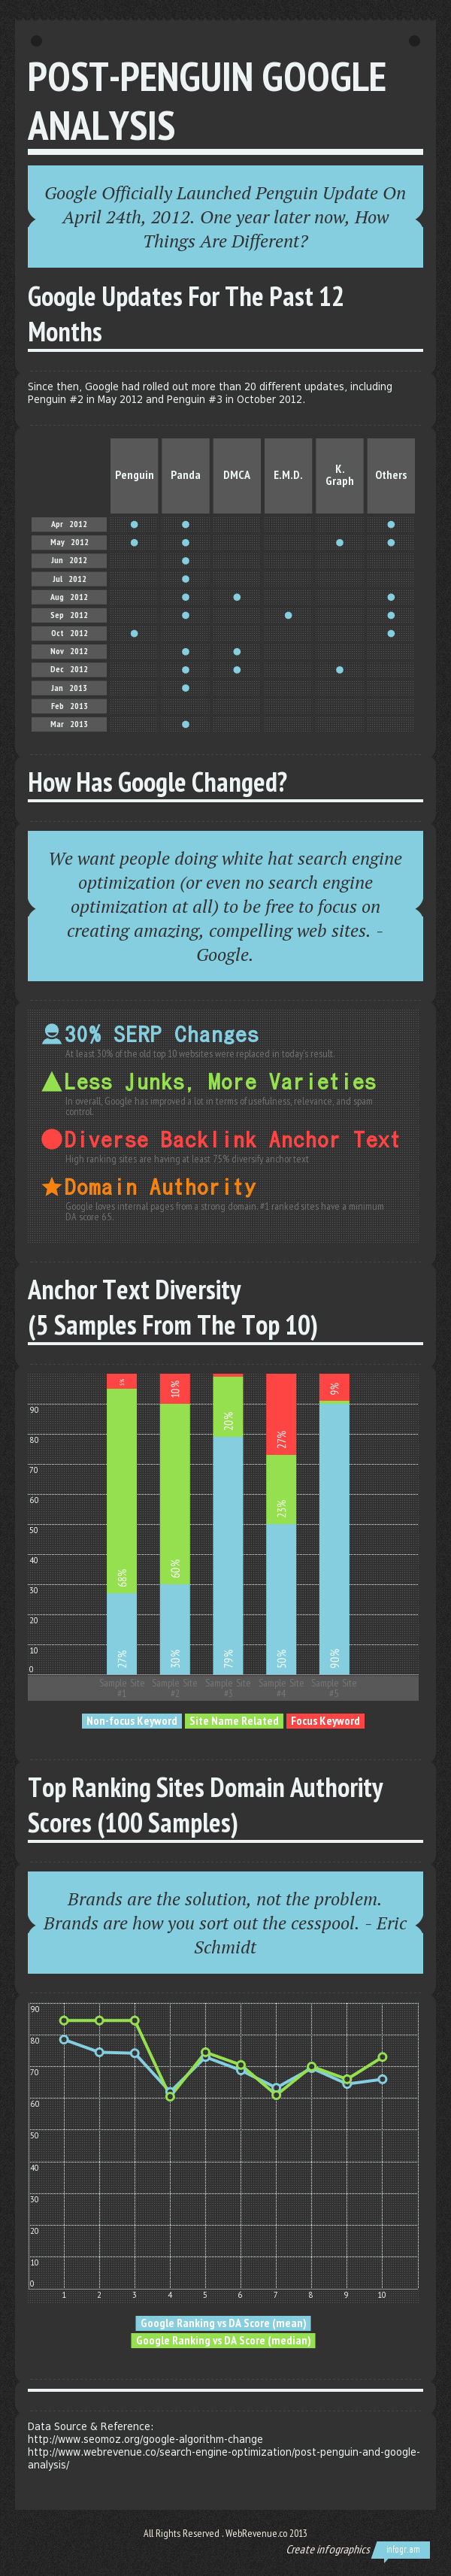 Google SEO Analysis Infographic